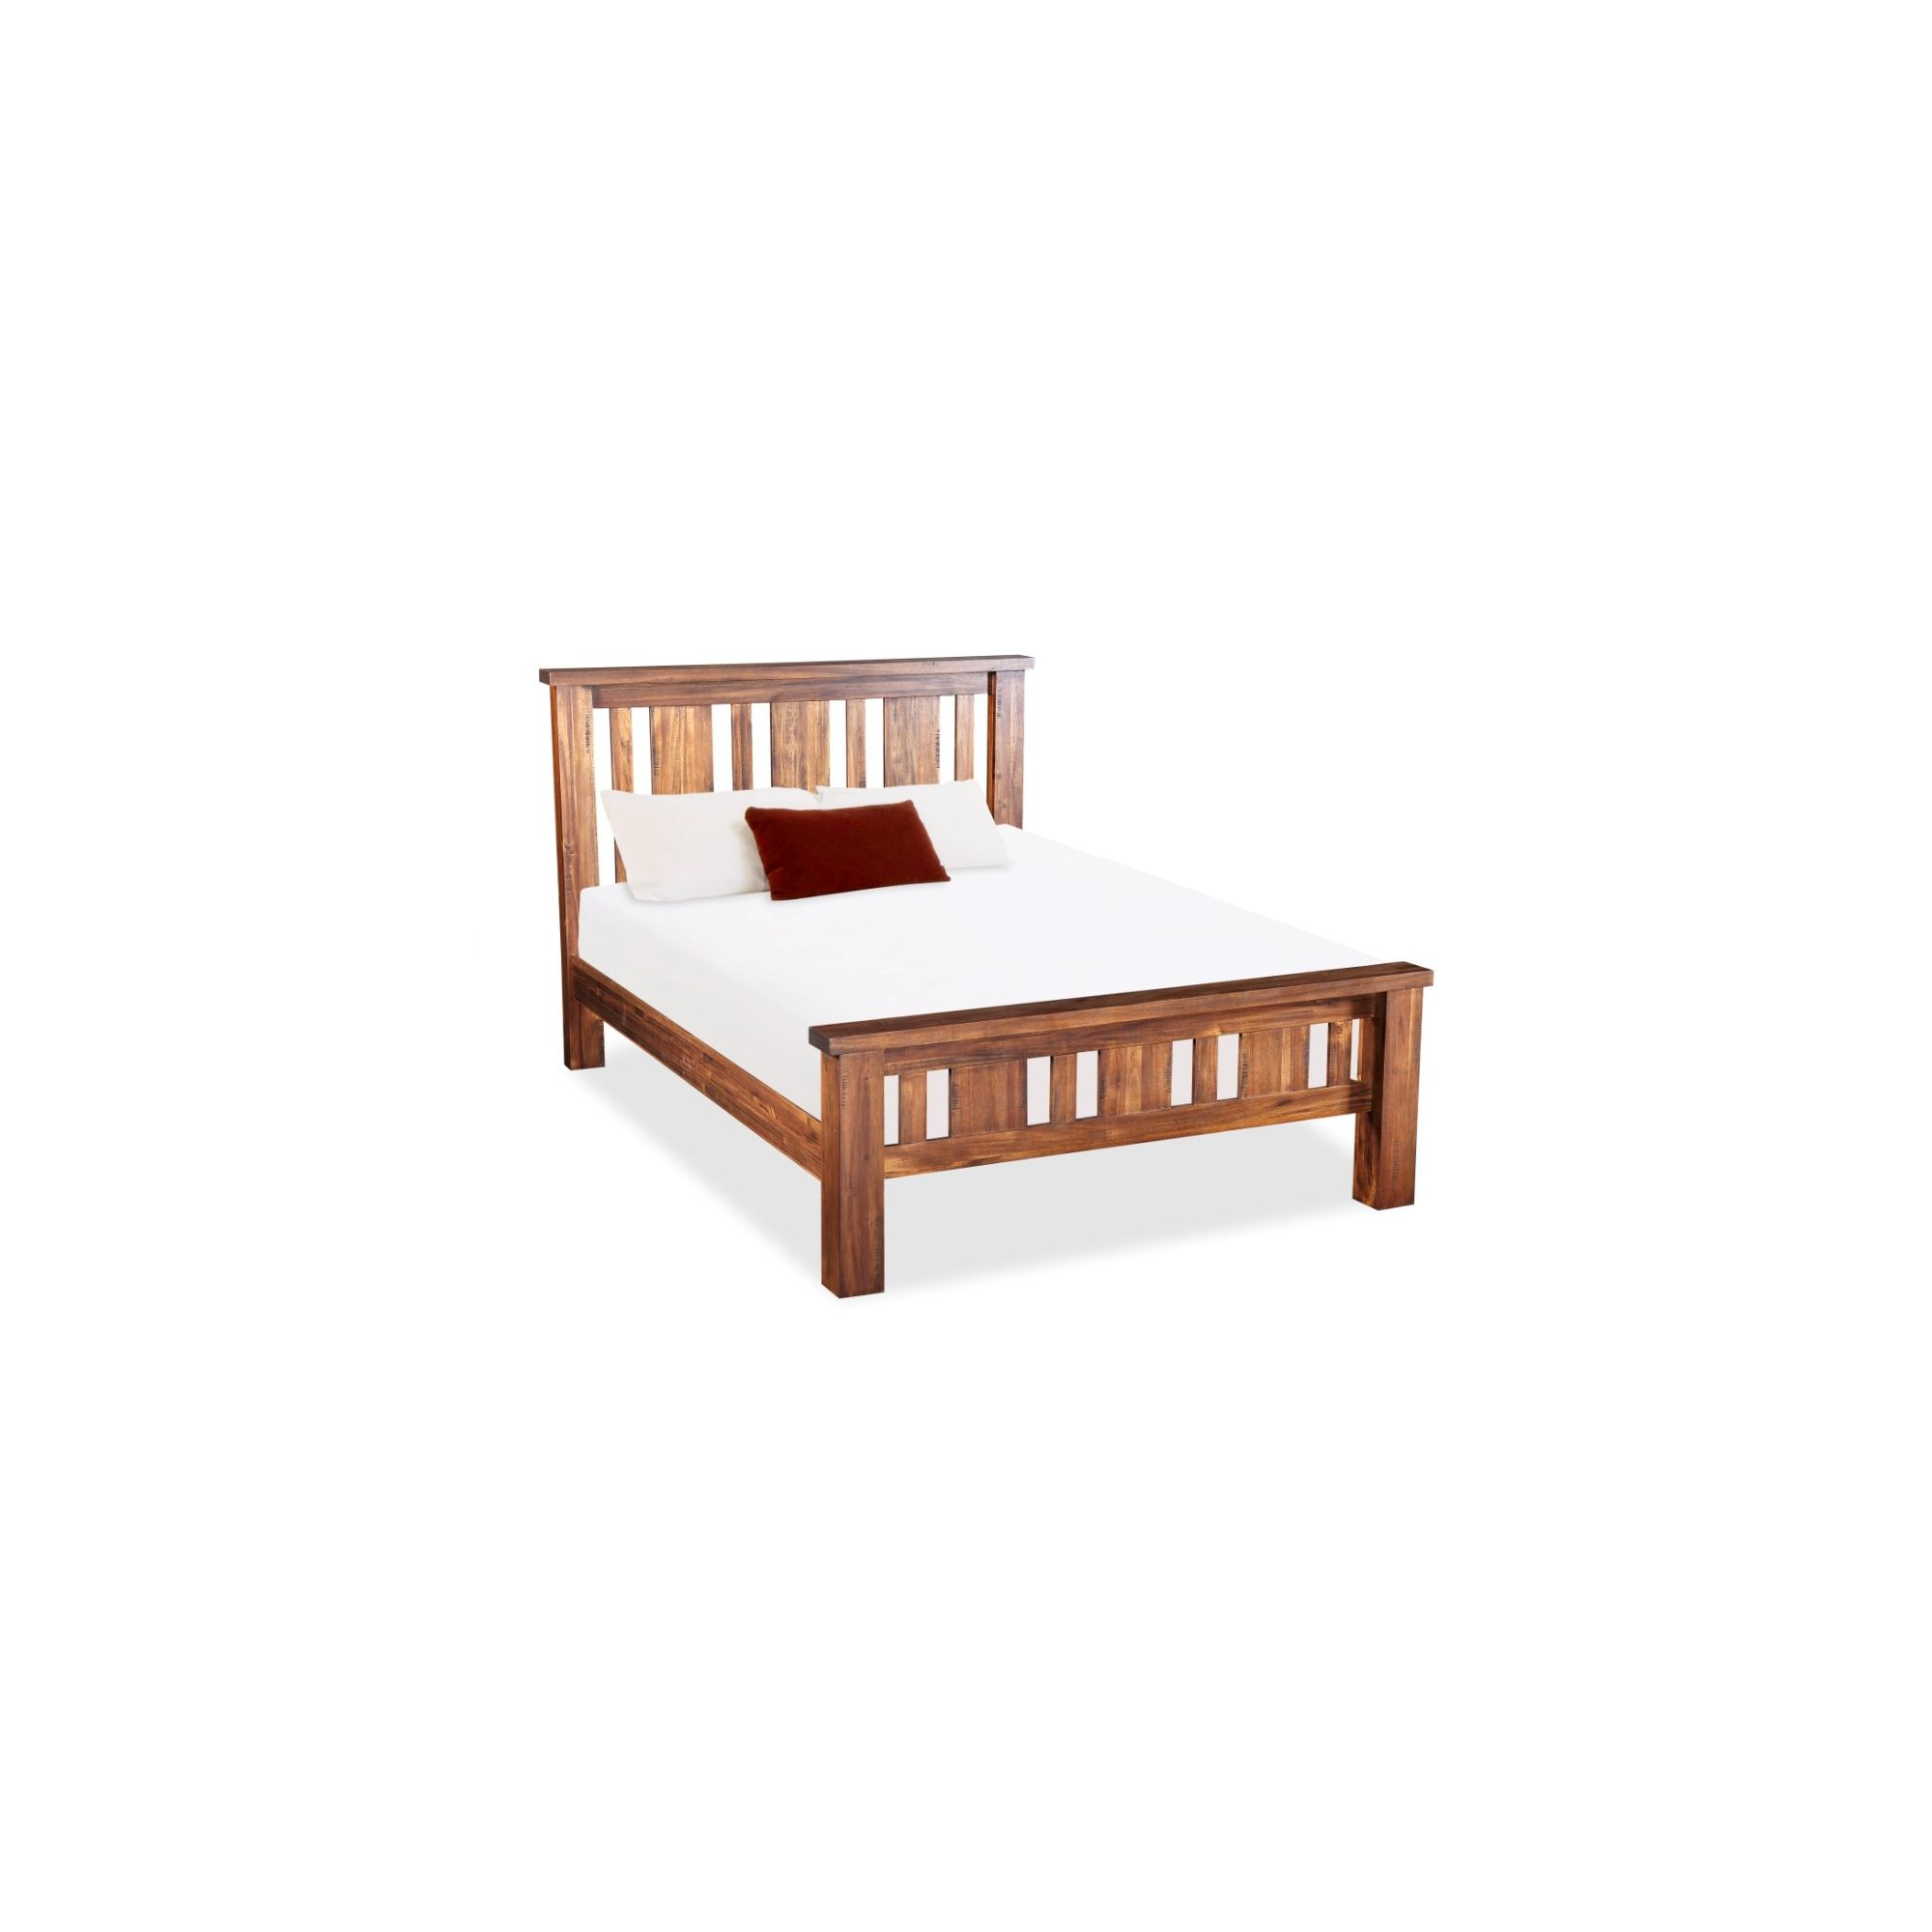 Alterton Furniture Romain Slatted Bed - King at Tesco Direct